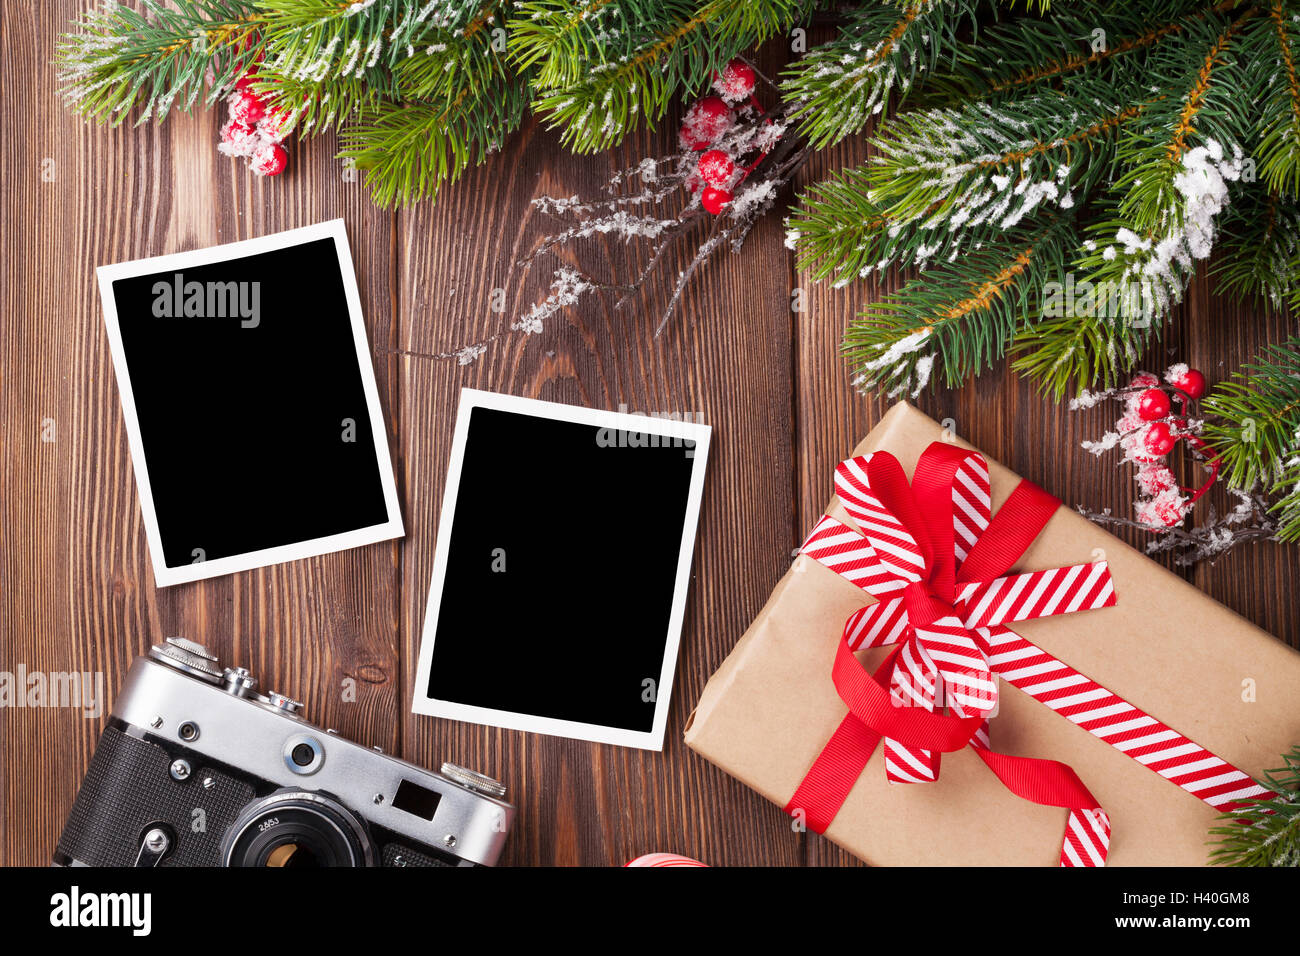 Blank Photo Frames With Christmas Gift Box, Pine Tree And Camera On Wooden  Table. Top View